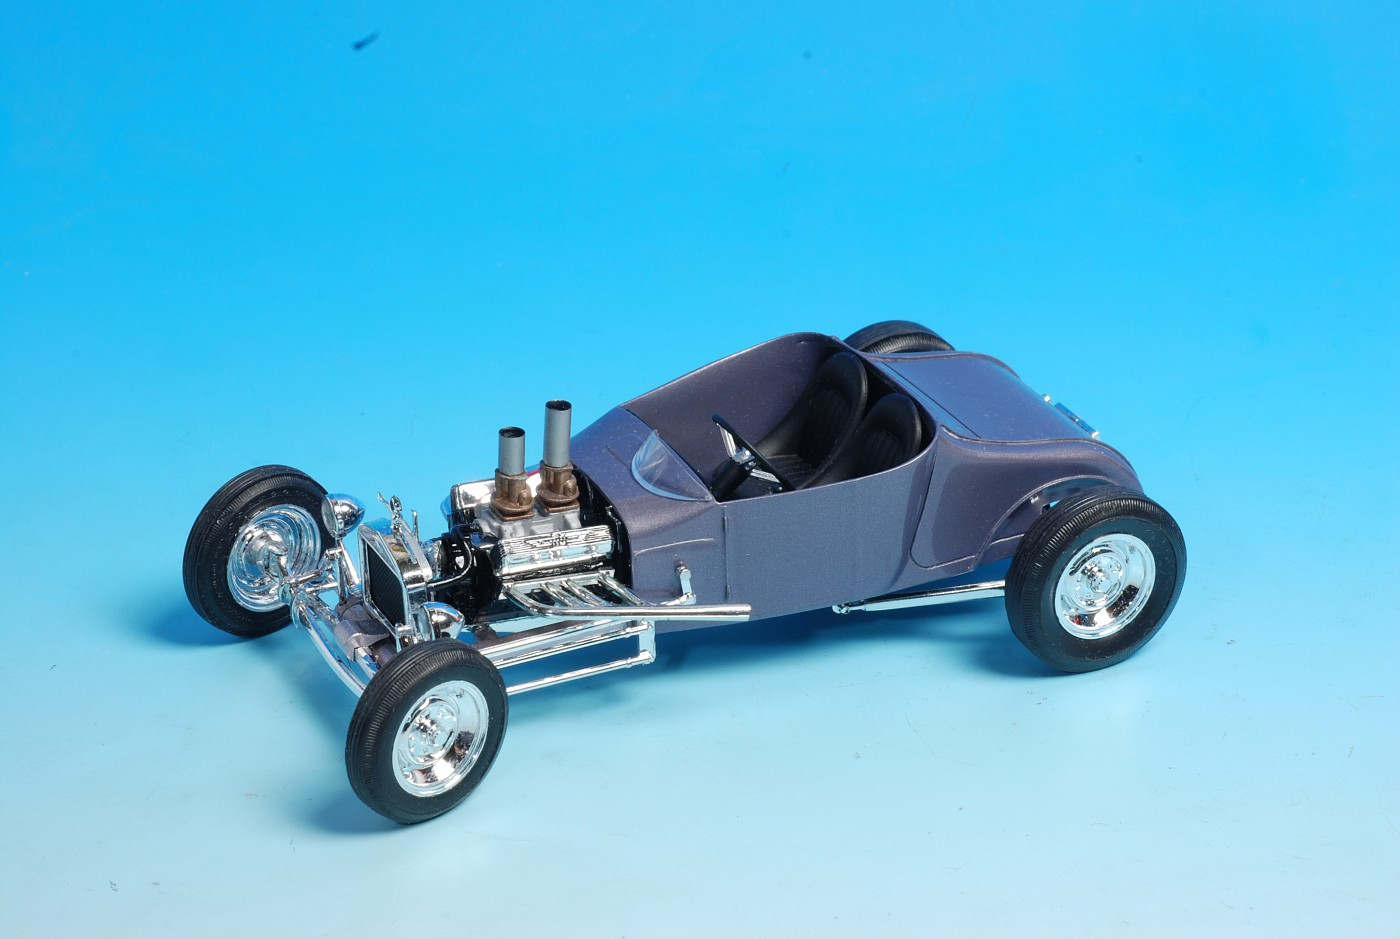 I used a monogram little t 25 model t roadster chassis which was patterned after model a frame rails and a thorougly kitbashed ford y block engine